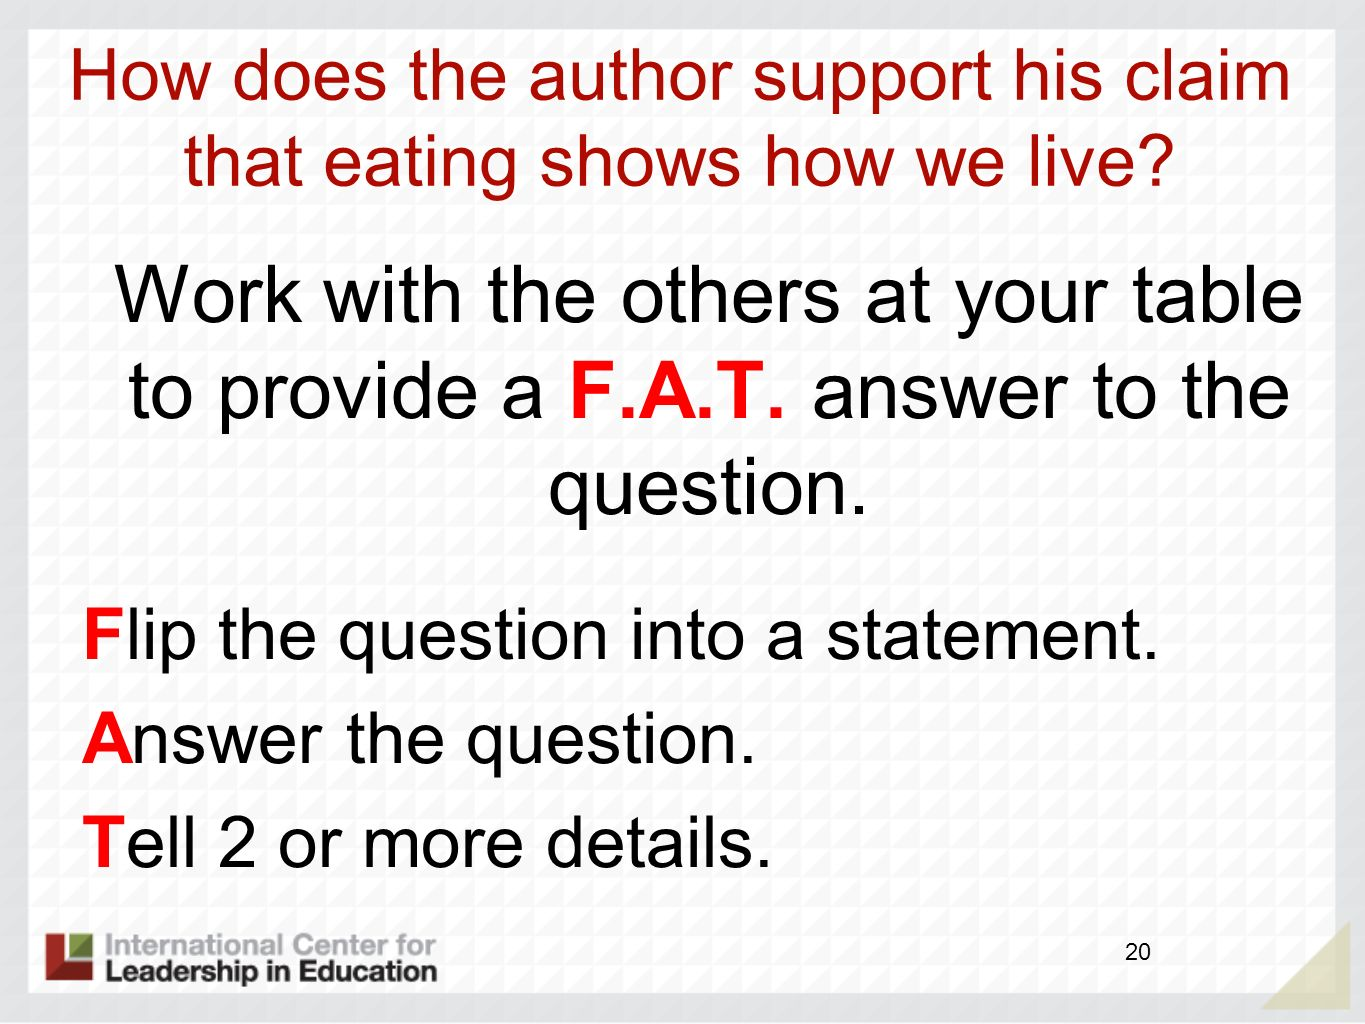 Work with the others at your table to provide a F.A.T. answer to the question. Flip the question into a statement. Answer the question. Tell 2 or more